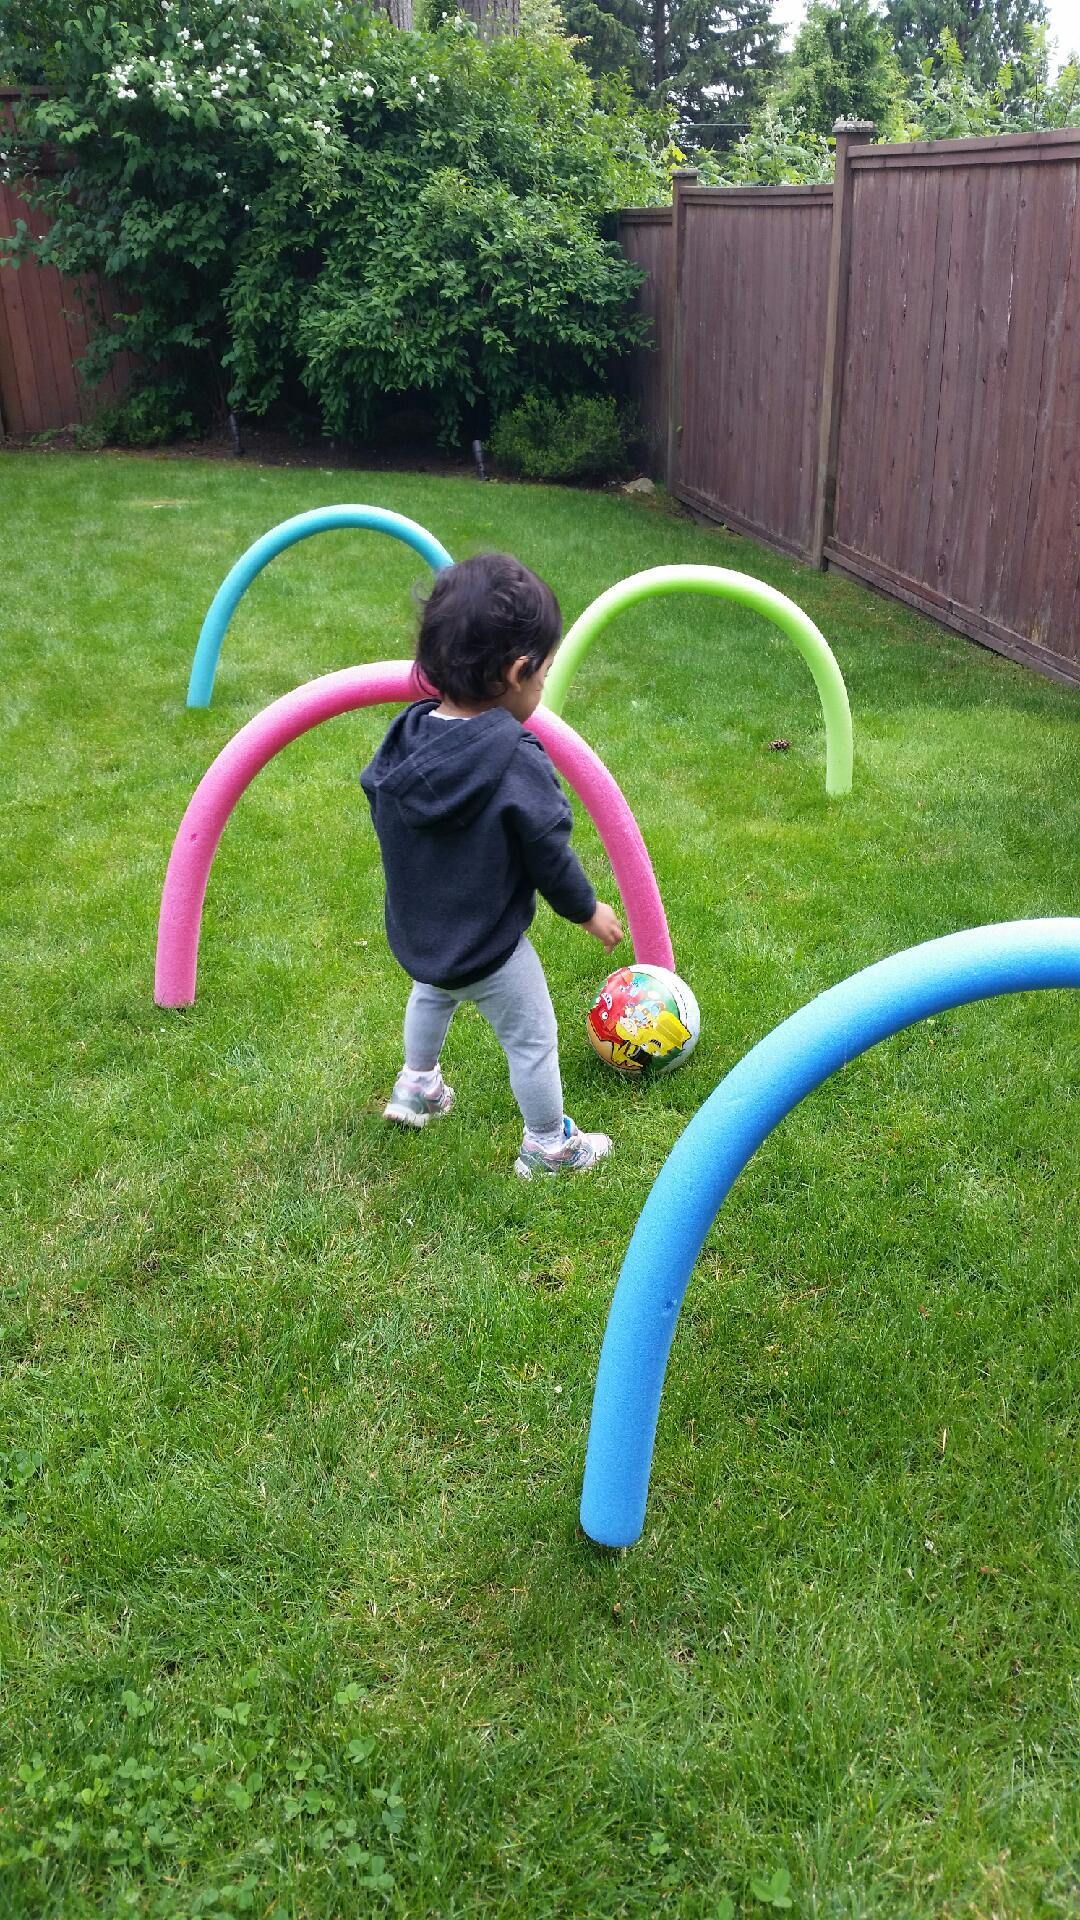 Have some fun outdoors this summer by making this super easy and